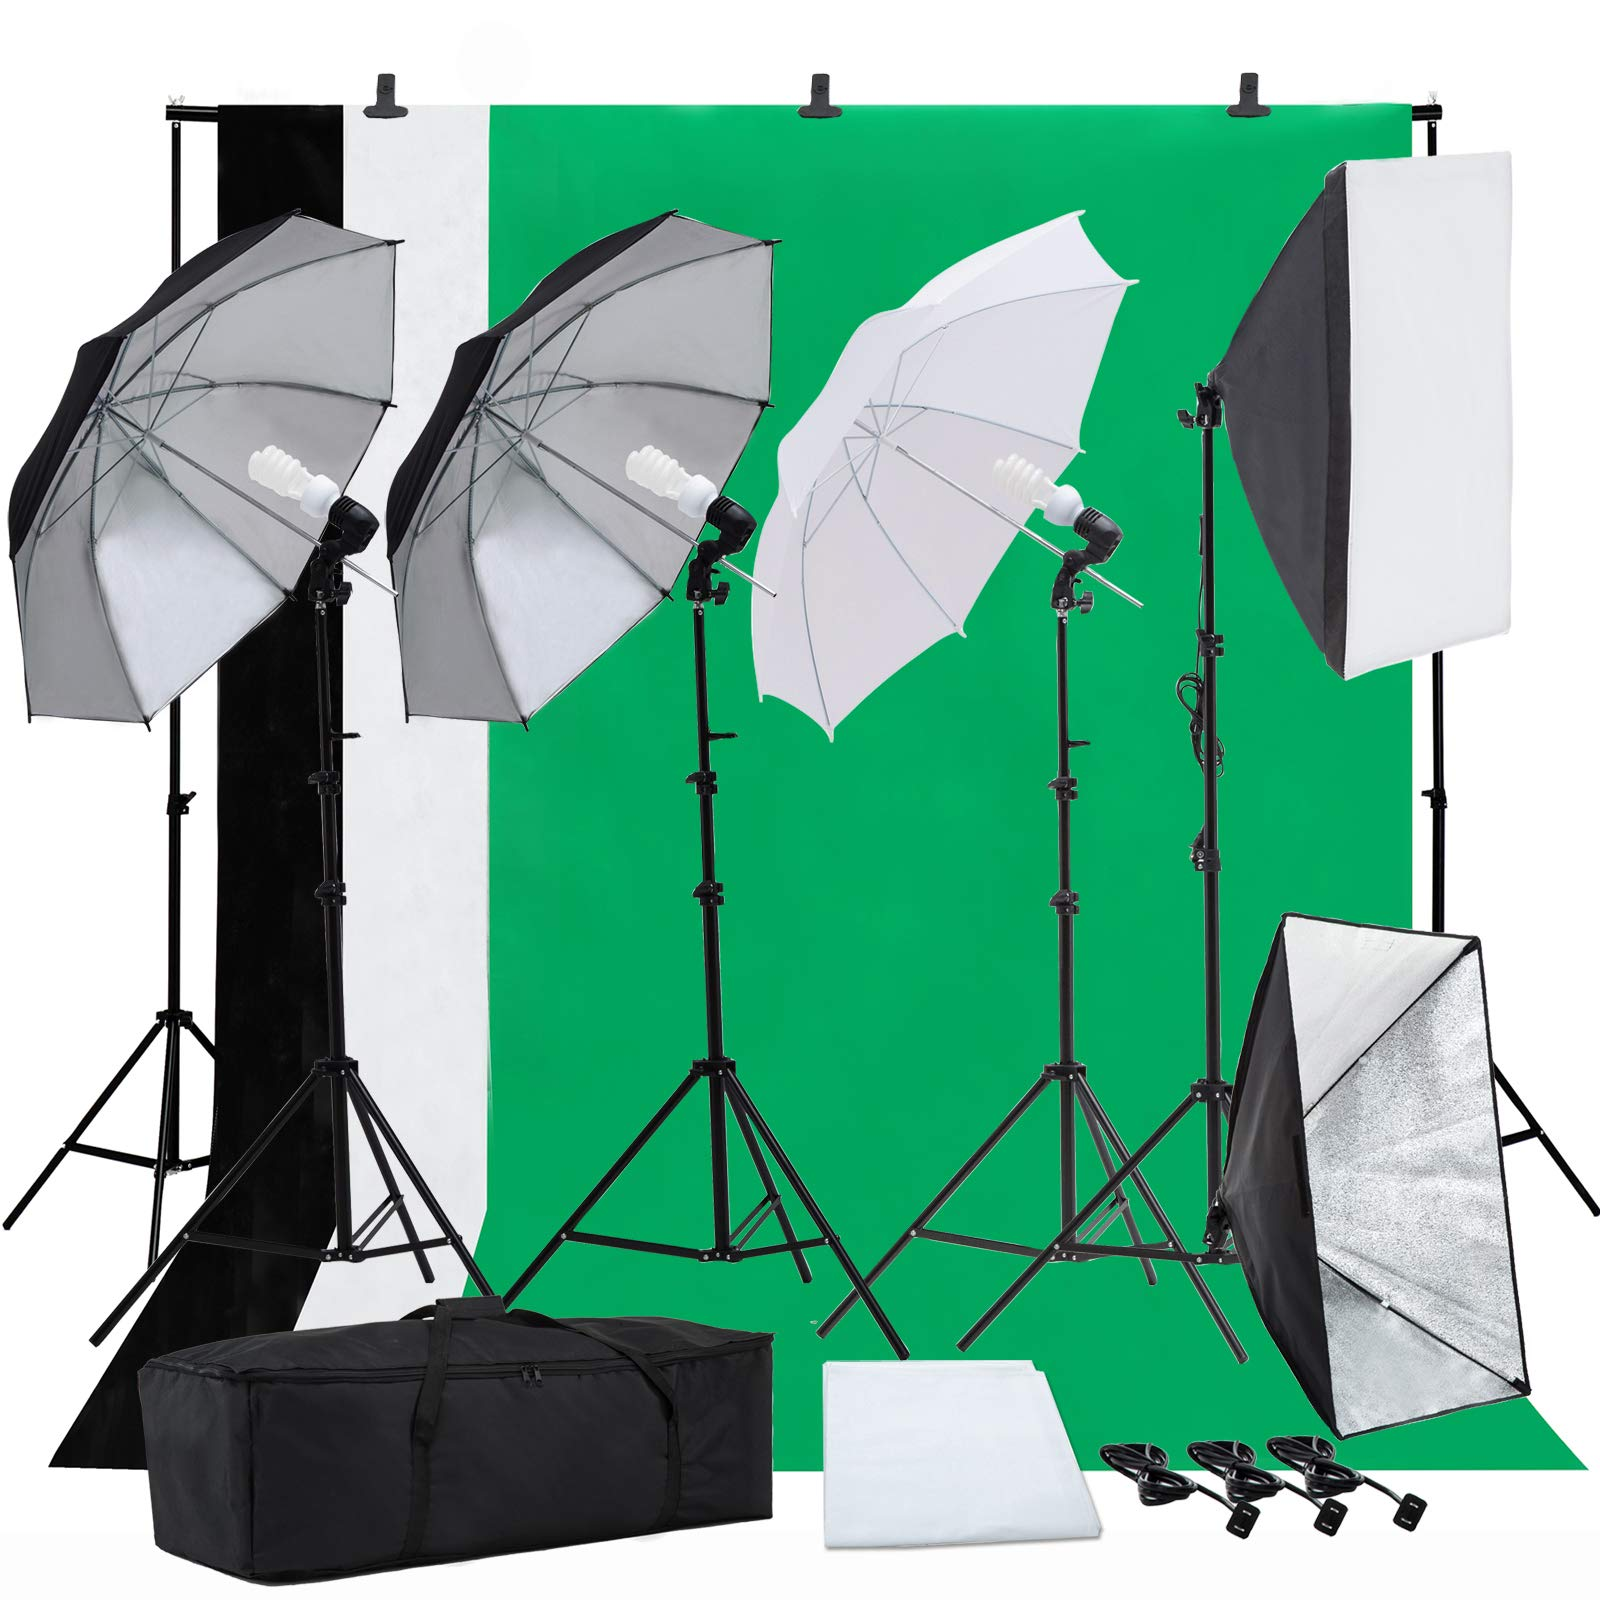 SUNCOO Photo Studio Photography Lighting Kit, Background Support Stand Kit 6.6ft x 10ft, Green Screen with Stand,Umbrellas Softbox Muslin Continuous Light Kit Case Portfolio Video Shooting, 4 Bulbs by SUNCOO